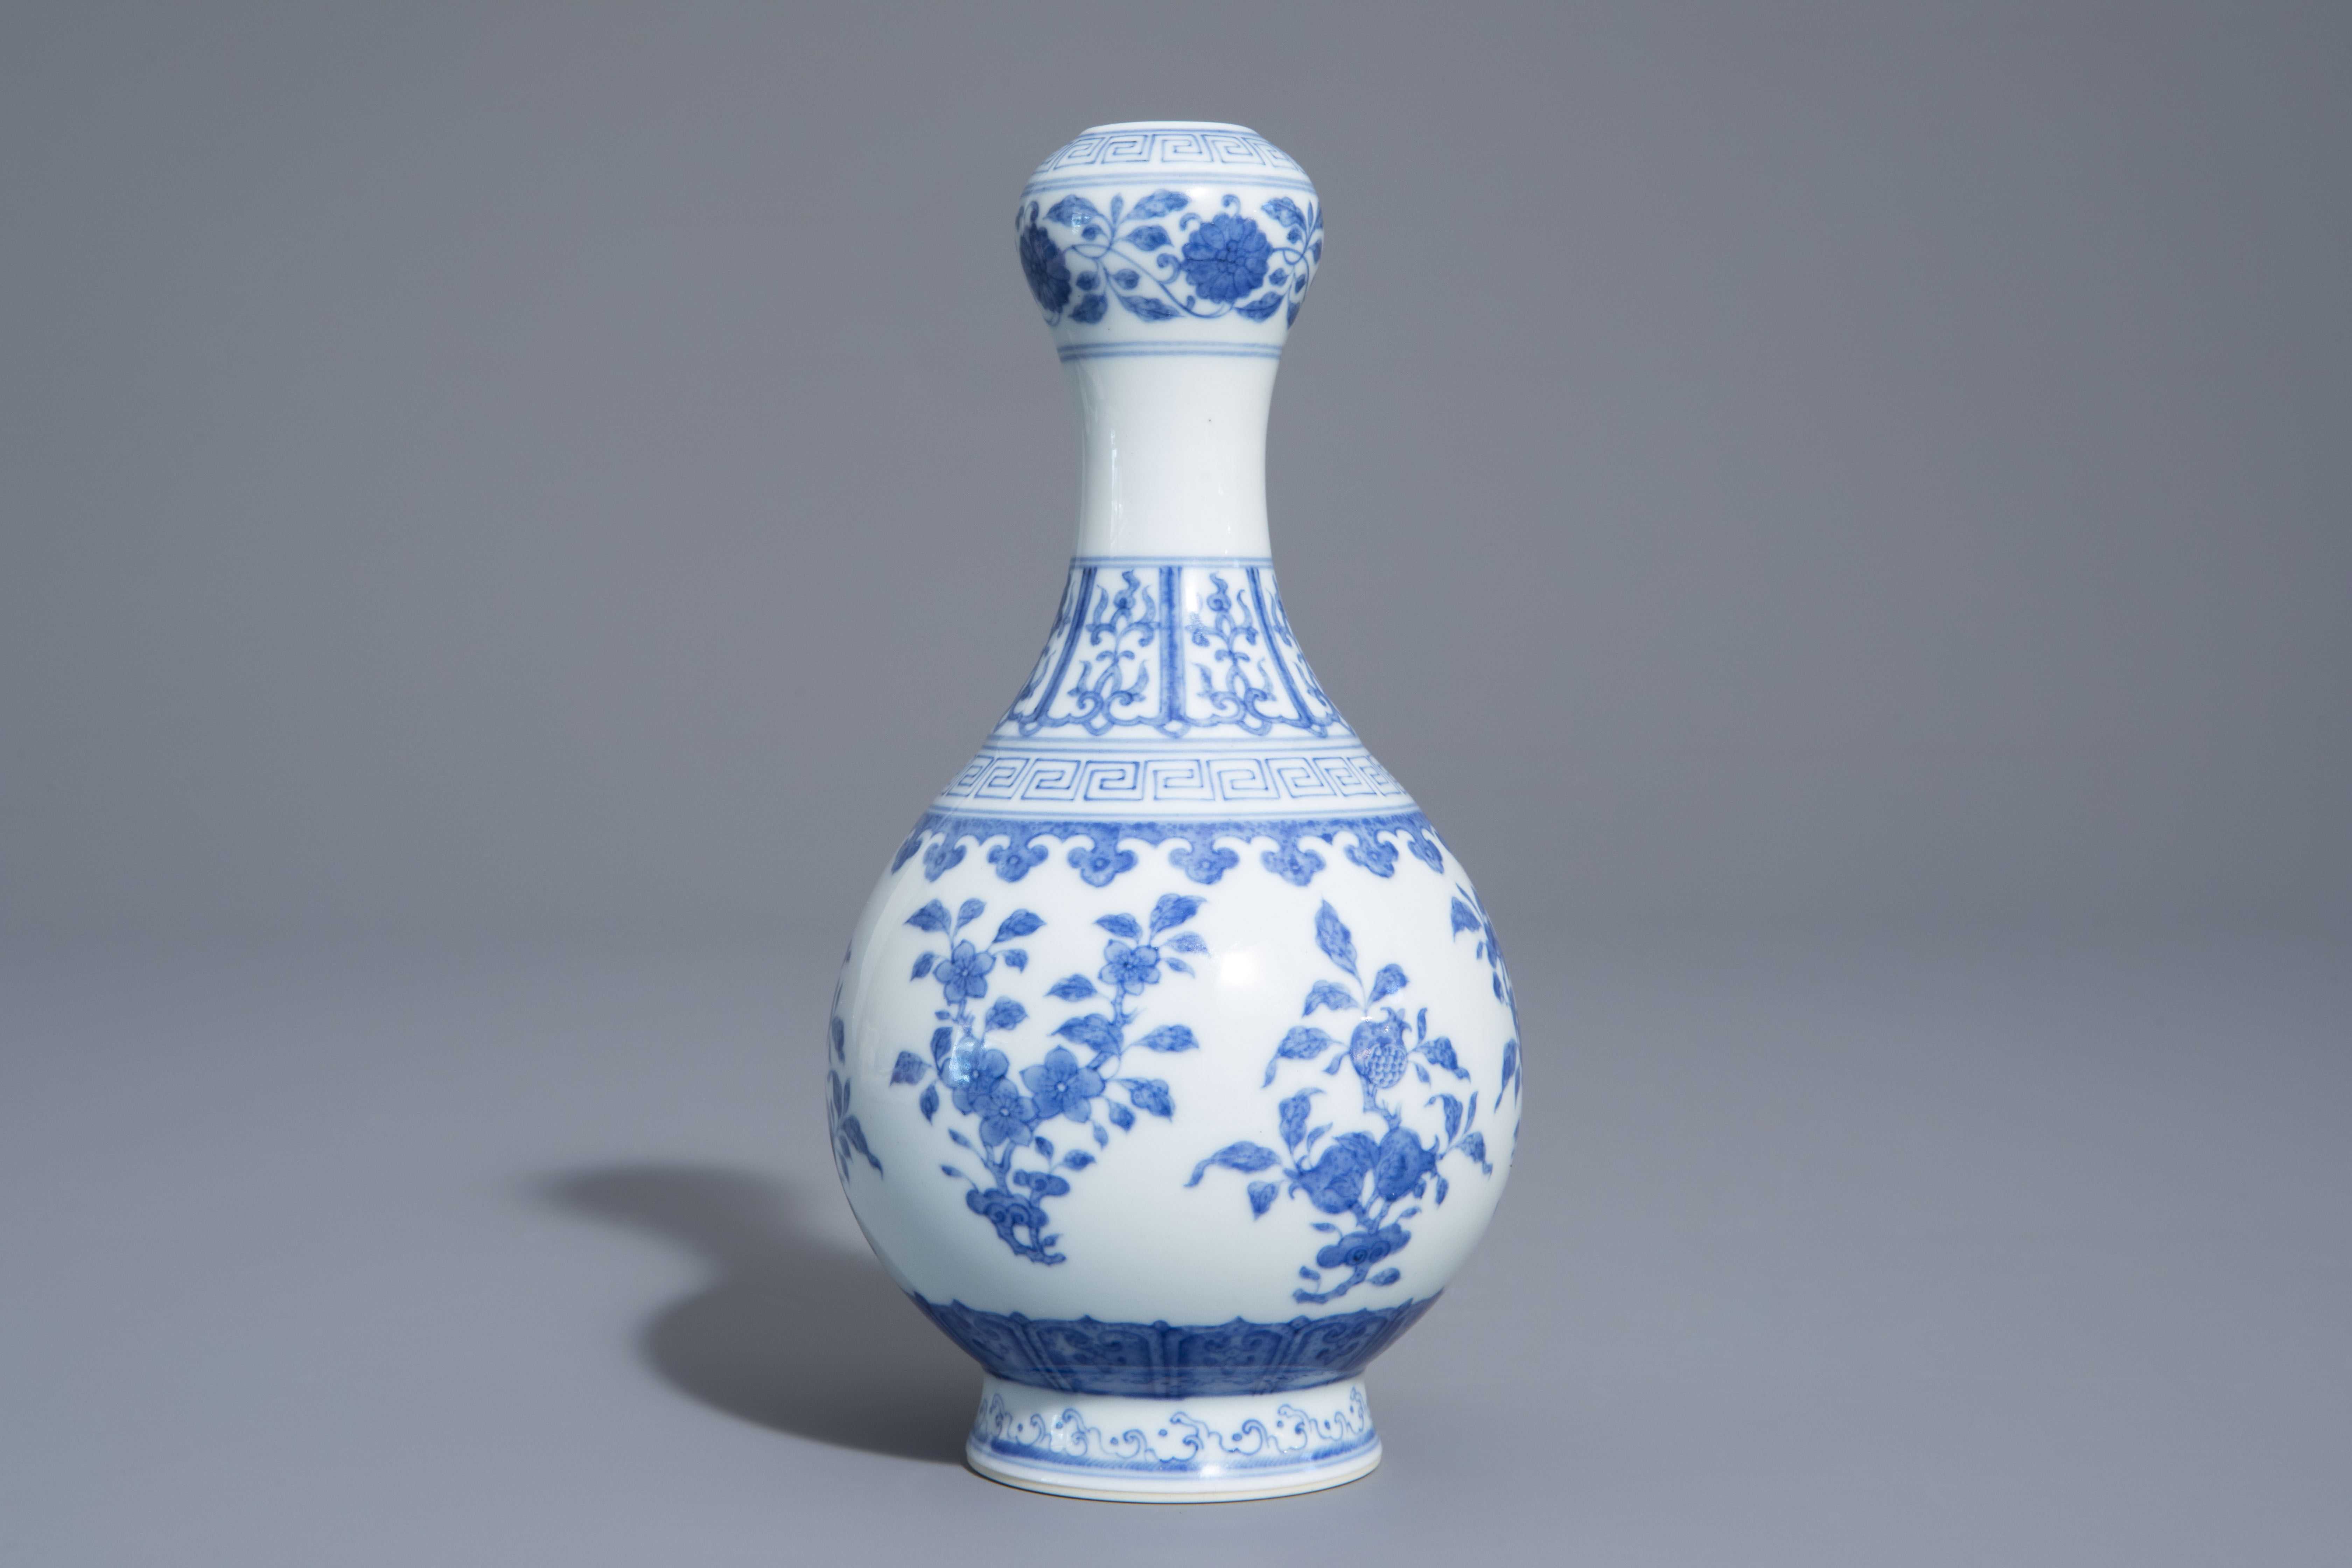 A Chinese blue and white garlic-head mouth vase with floral design, Qianlong mark, 20th C. - Image 3 of 7